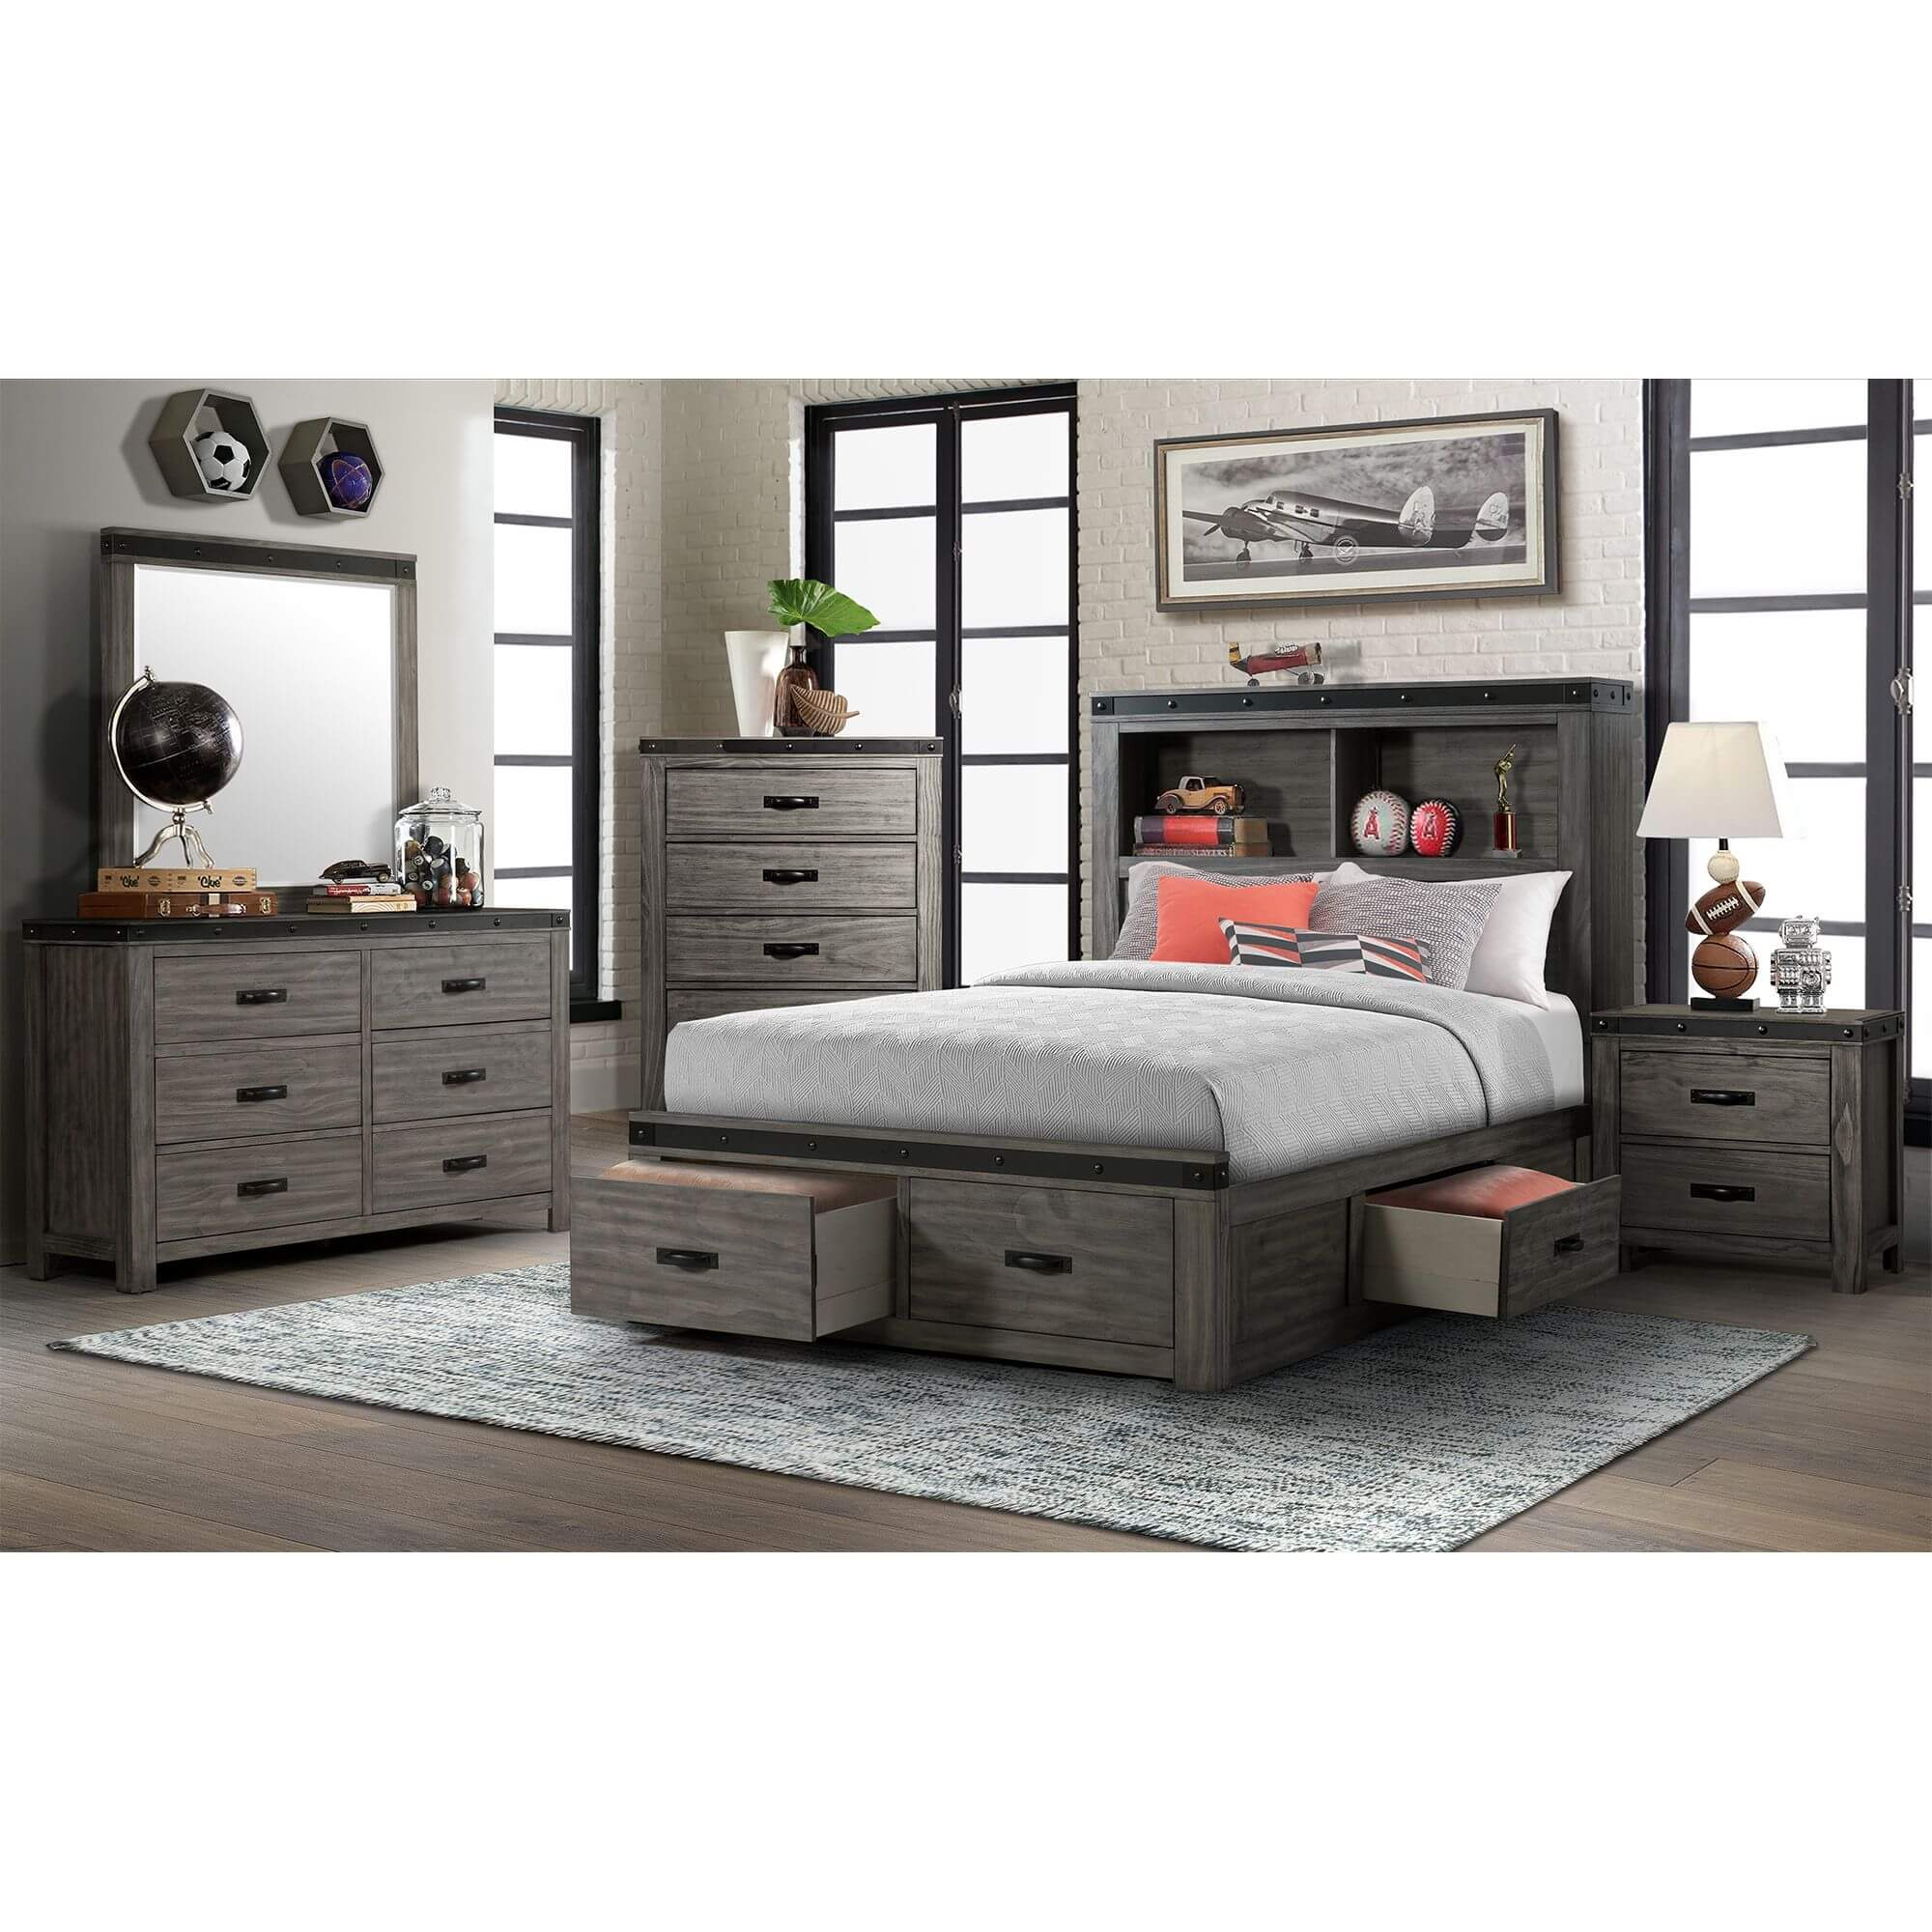 Image of: Rent To Own Elements International 5 Piece Wade Full Storage Bedroom At Aaron S Today